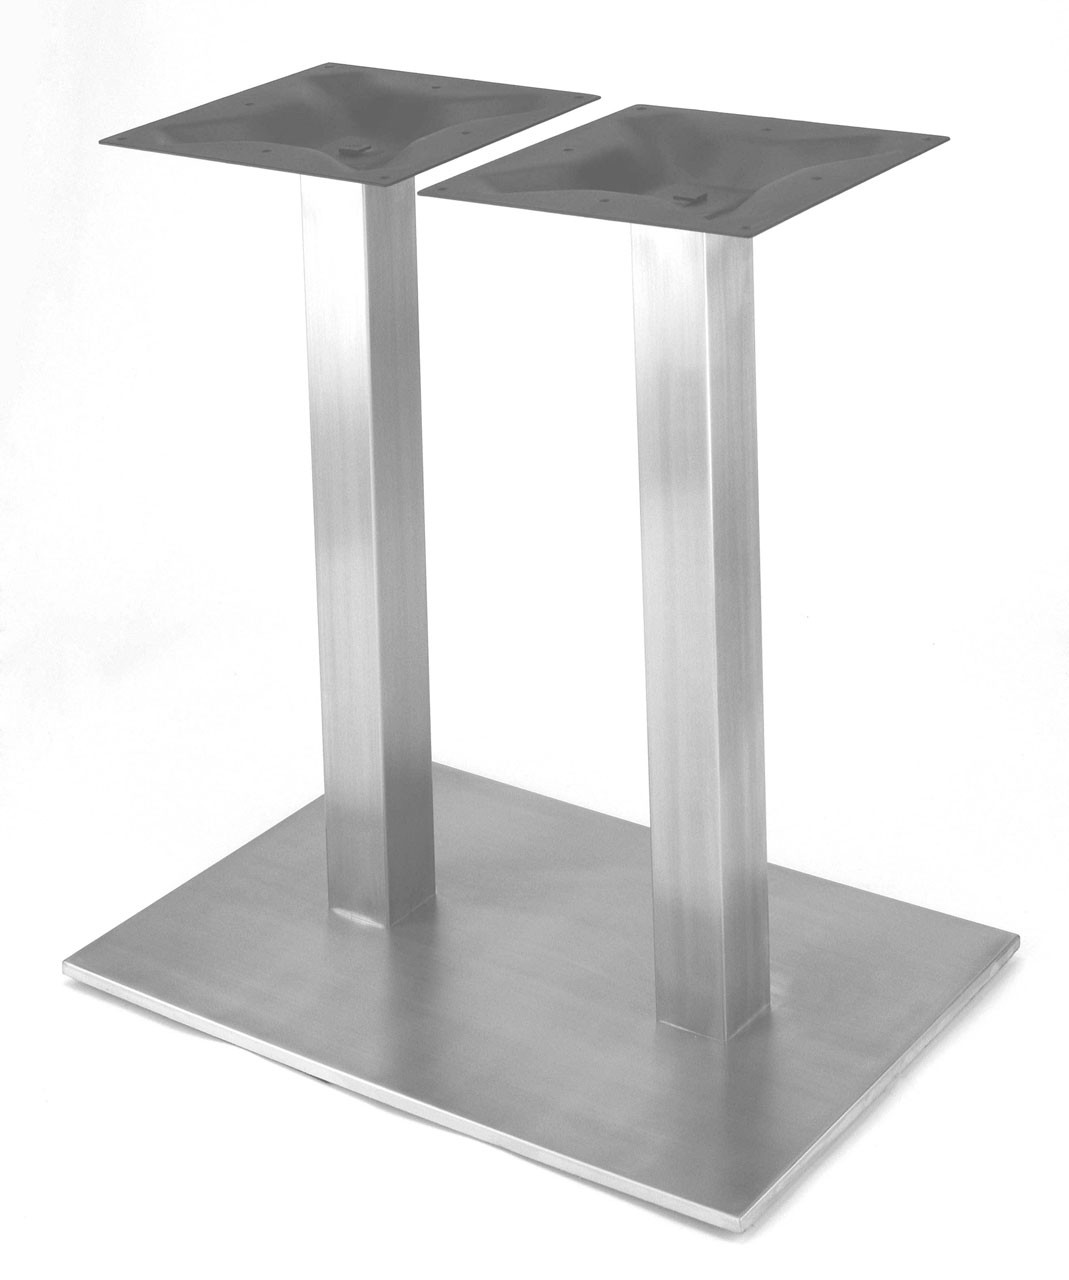 "304 Food Grade Stainless Steel, 34.75"" Counter Height, 18 x 27.5"" Rectangle Style Pedestal Base with 2 x Square Columns shown without table top. Suitable for outdoor use with protective spray."